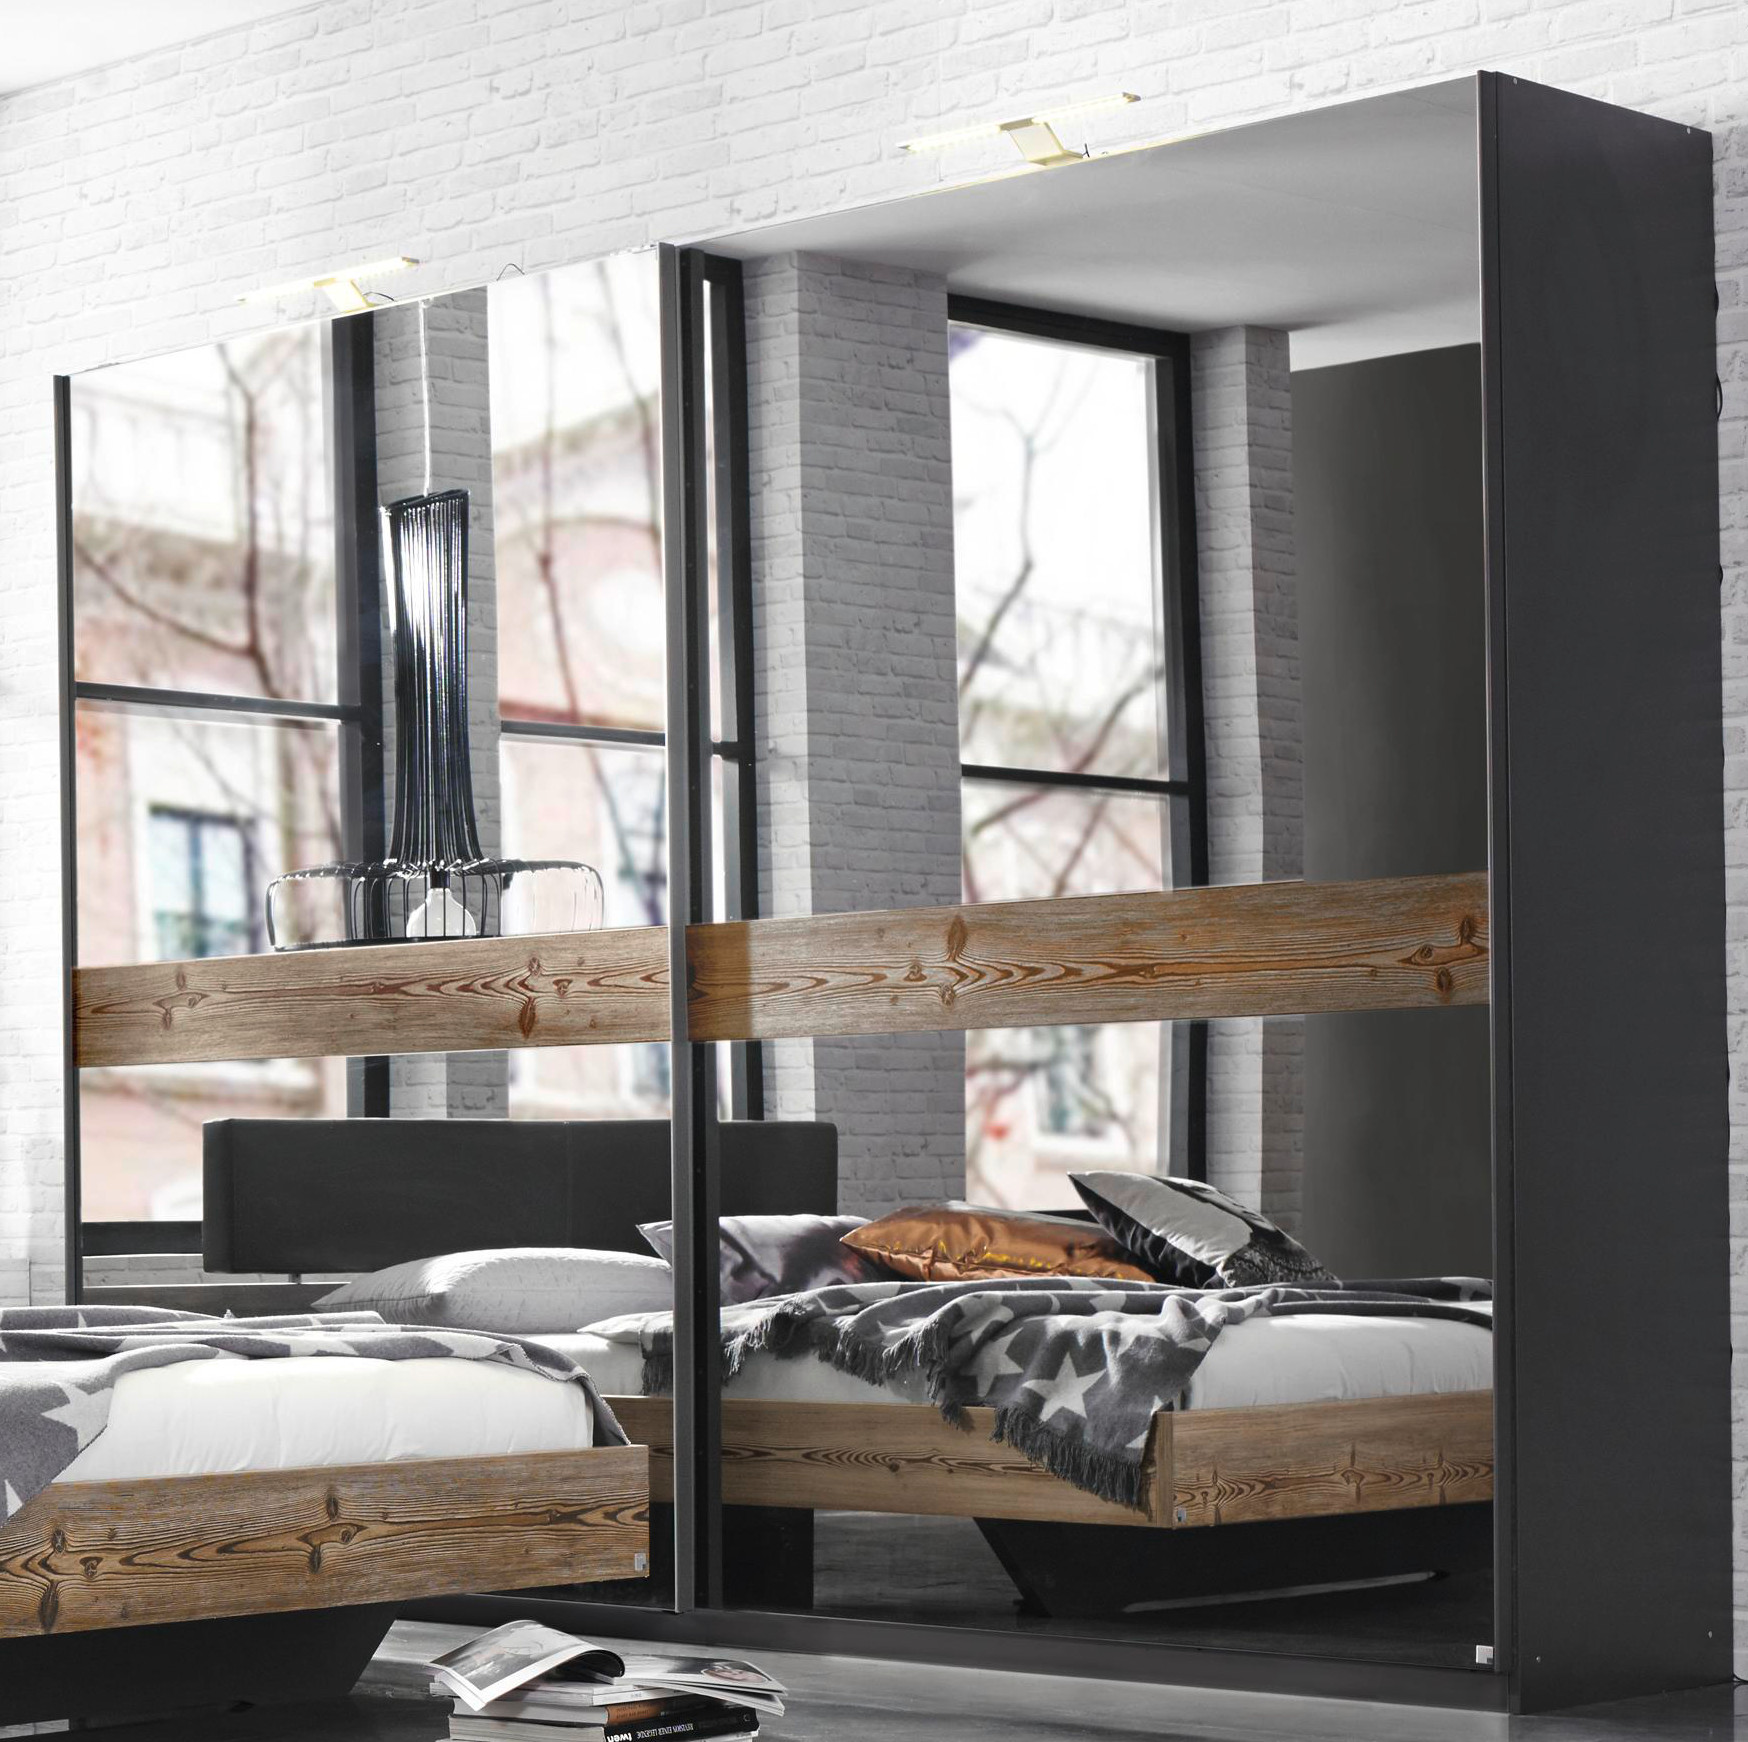 rauch select schwebet renschrank montreal 3 breiten h he 223 cm l rche graphit ebay. Black Bedroom Furniture Sets. Home Design Ideas